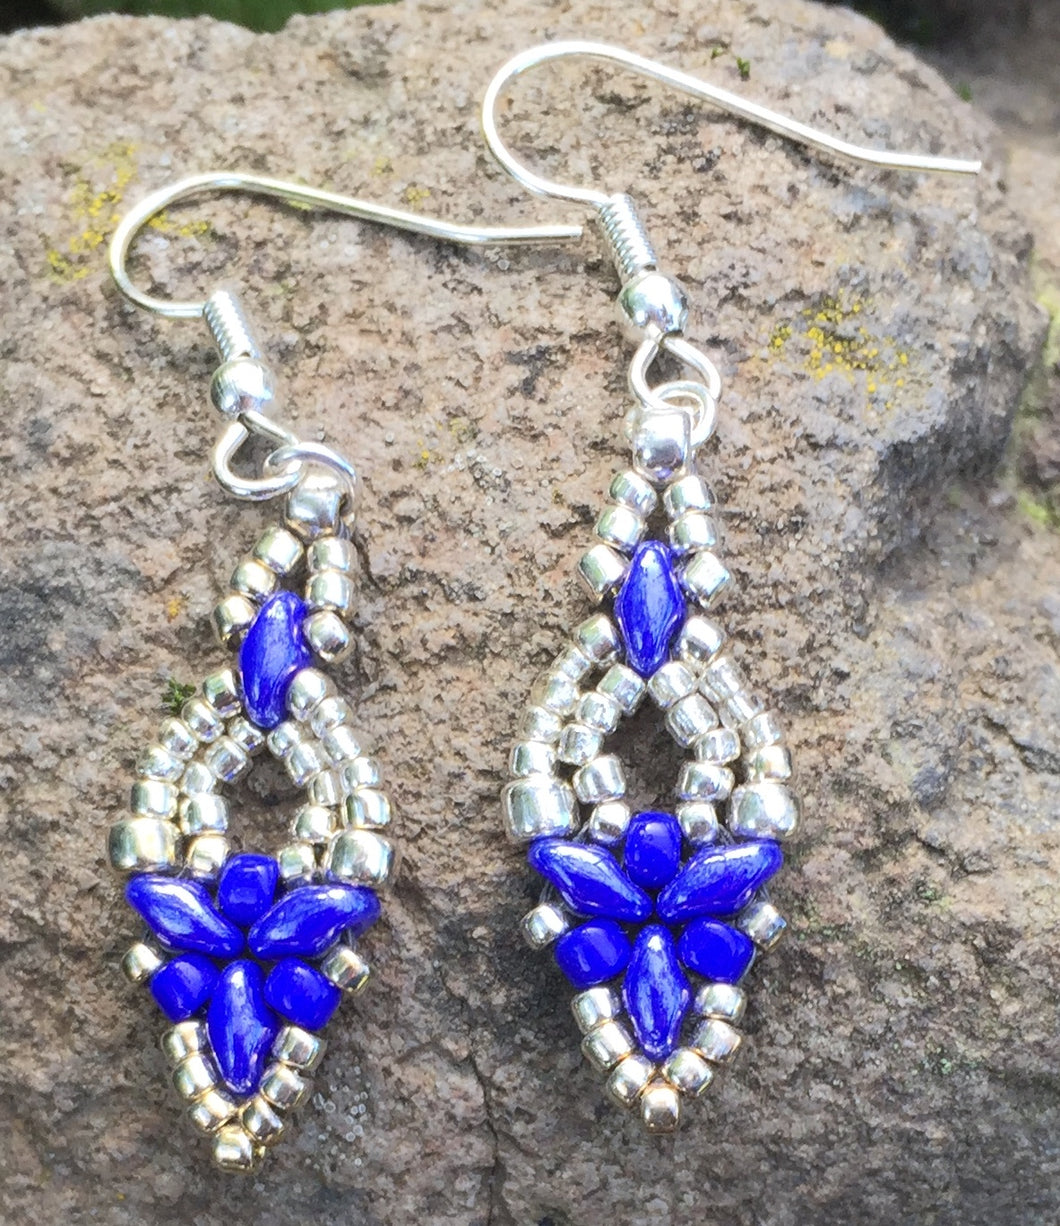 Hummingbird Earrings - Silver over Cobalt